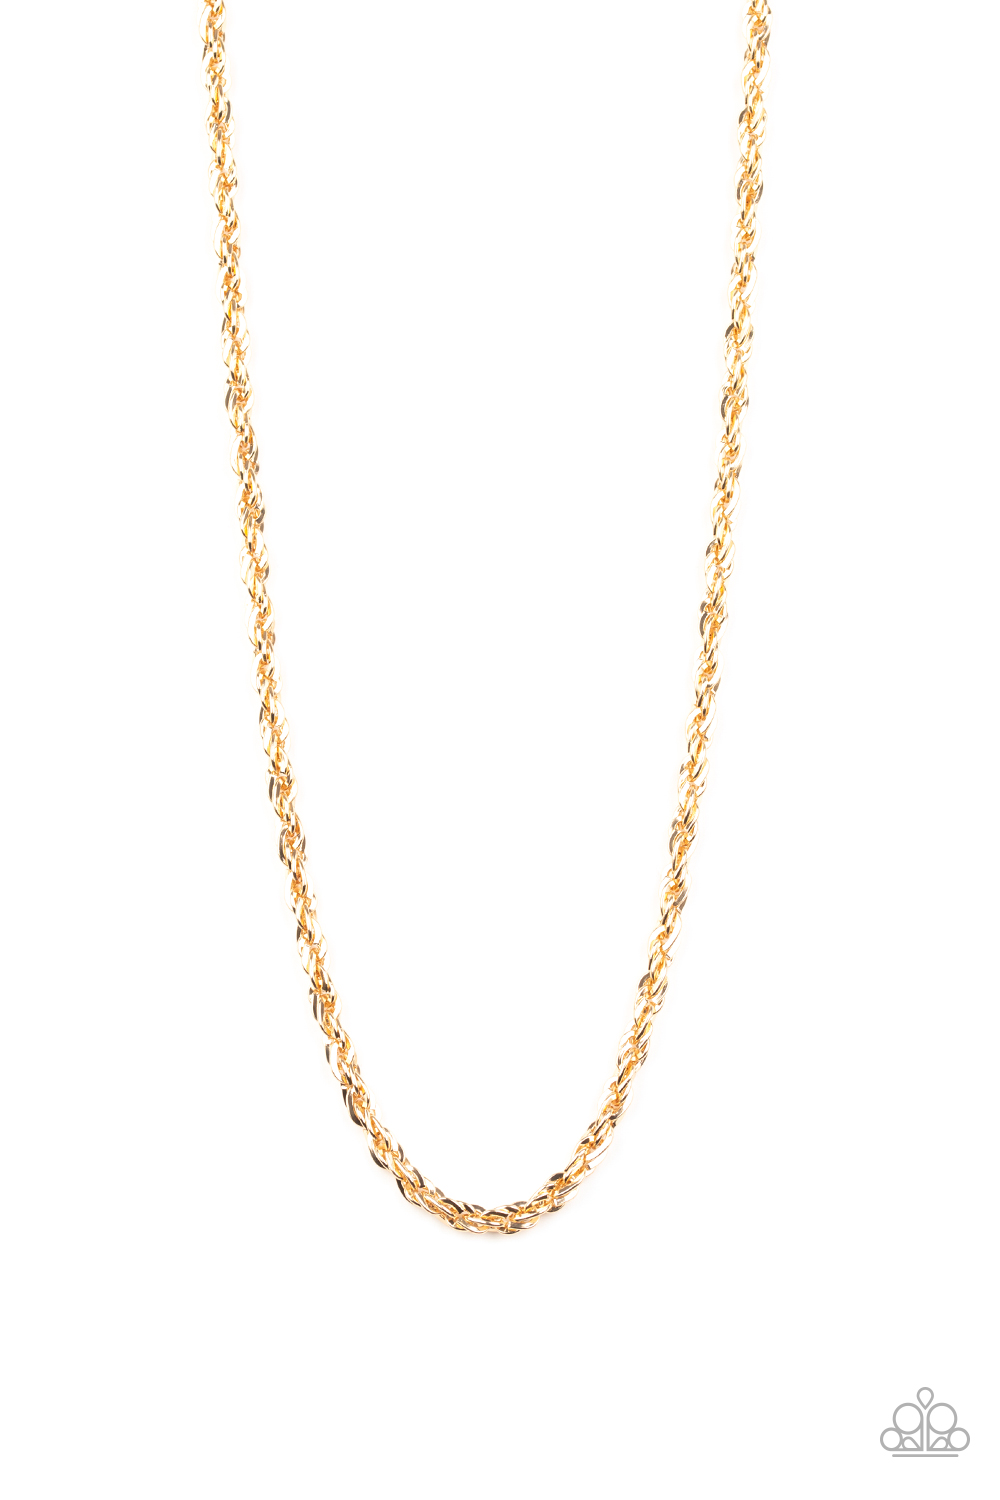 Paparazzi Accessories:  Instant Replay - Gold (1689)